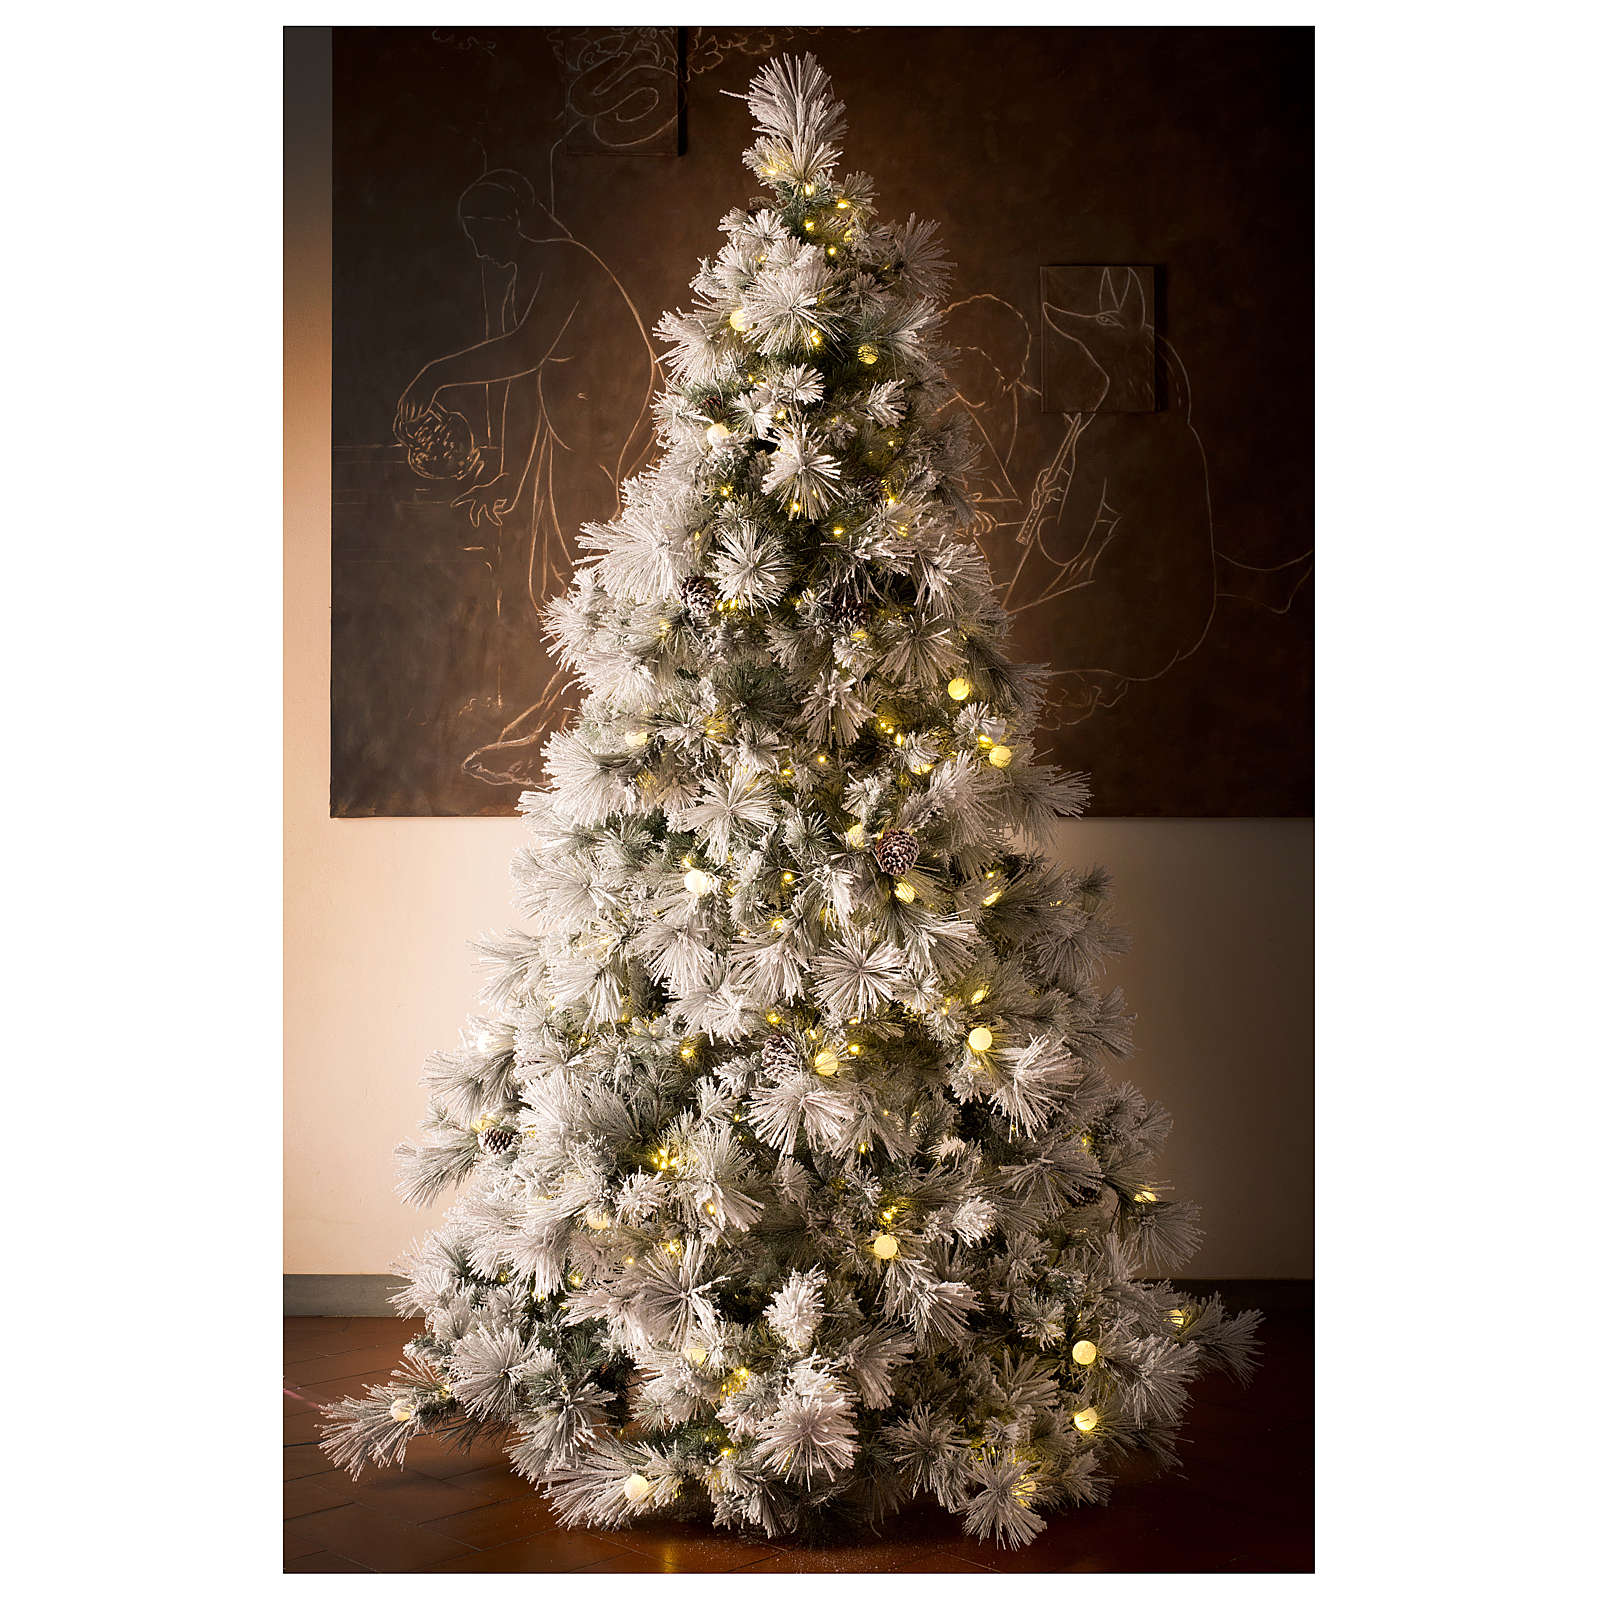 new styles cbbcf 13a5e Frosted Christmas Tree 340 cm with natural pine cones 1000 lights eco led  interior real feel